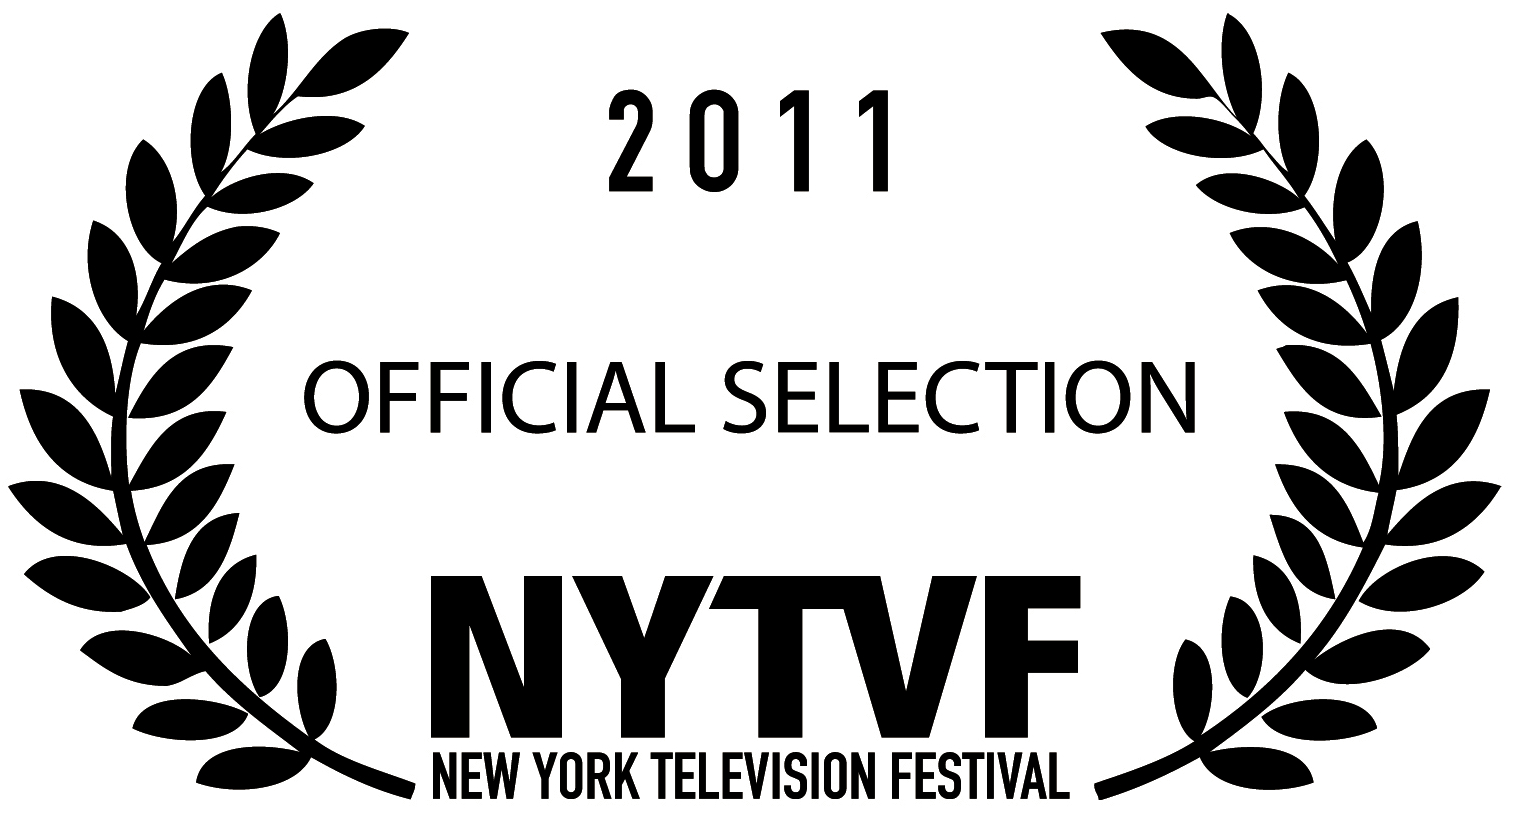 2011-nytvf_officialselection_laurels_white-cropped.jpg